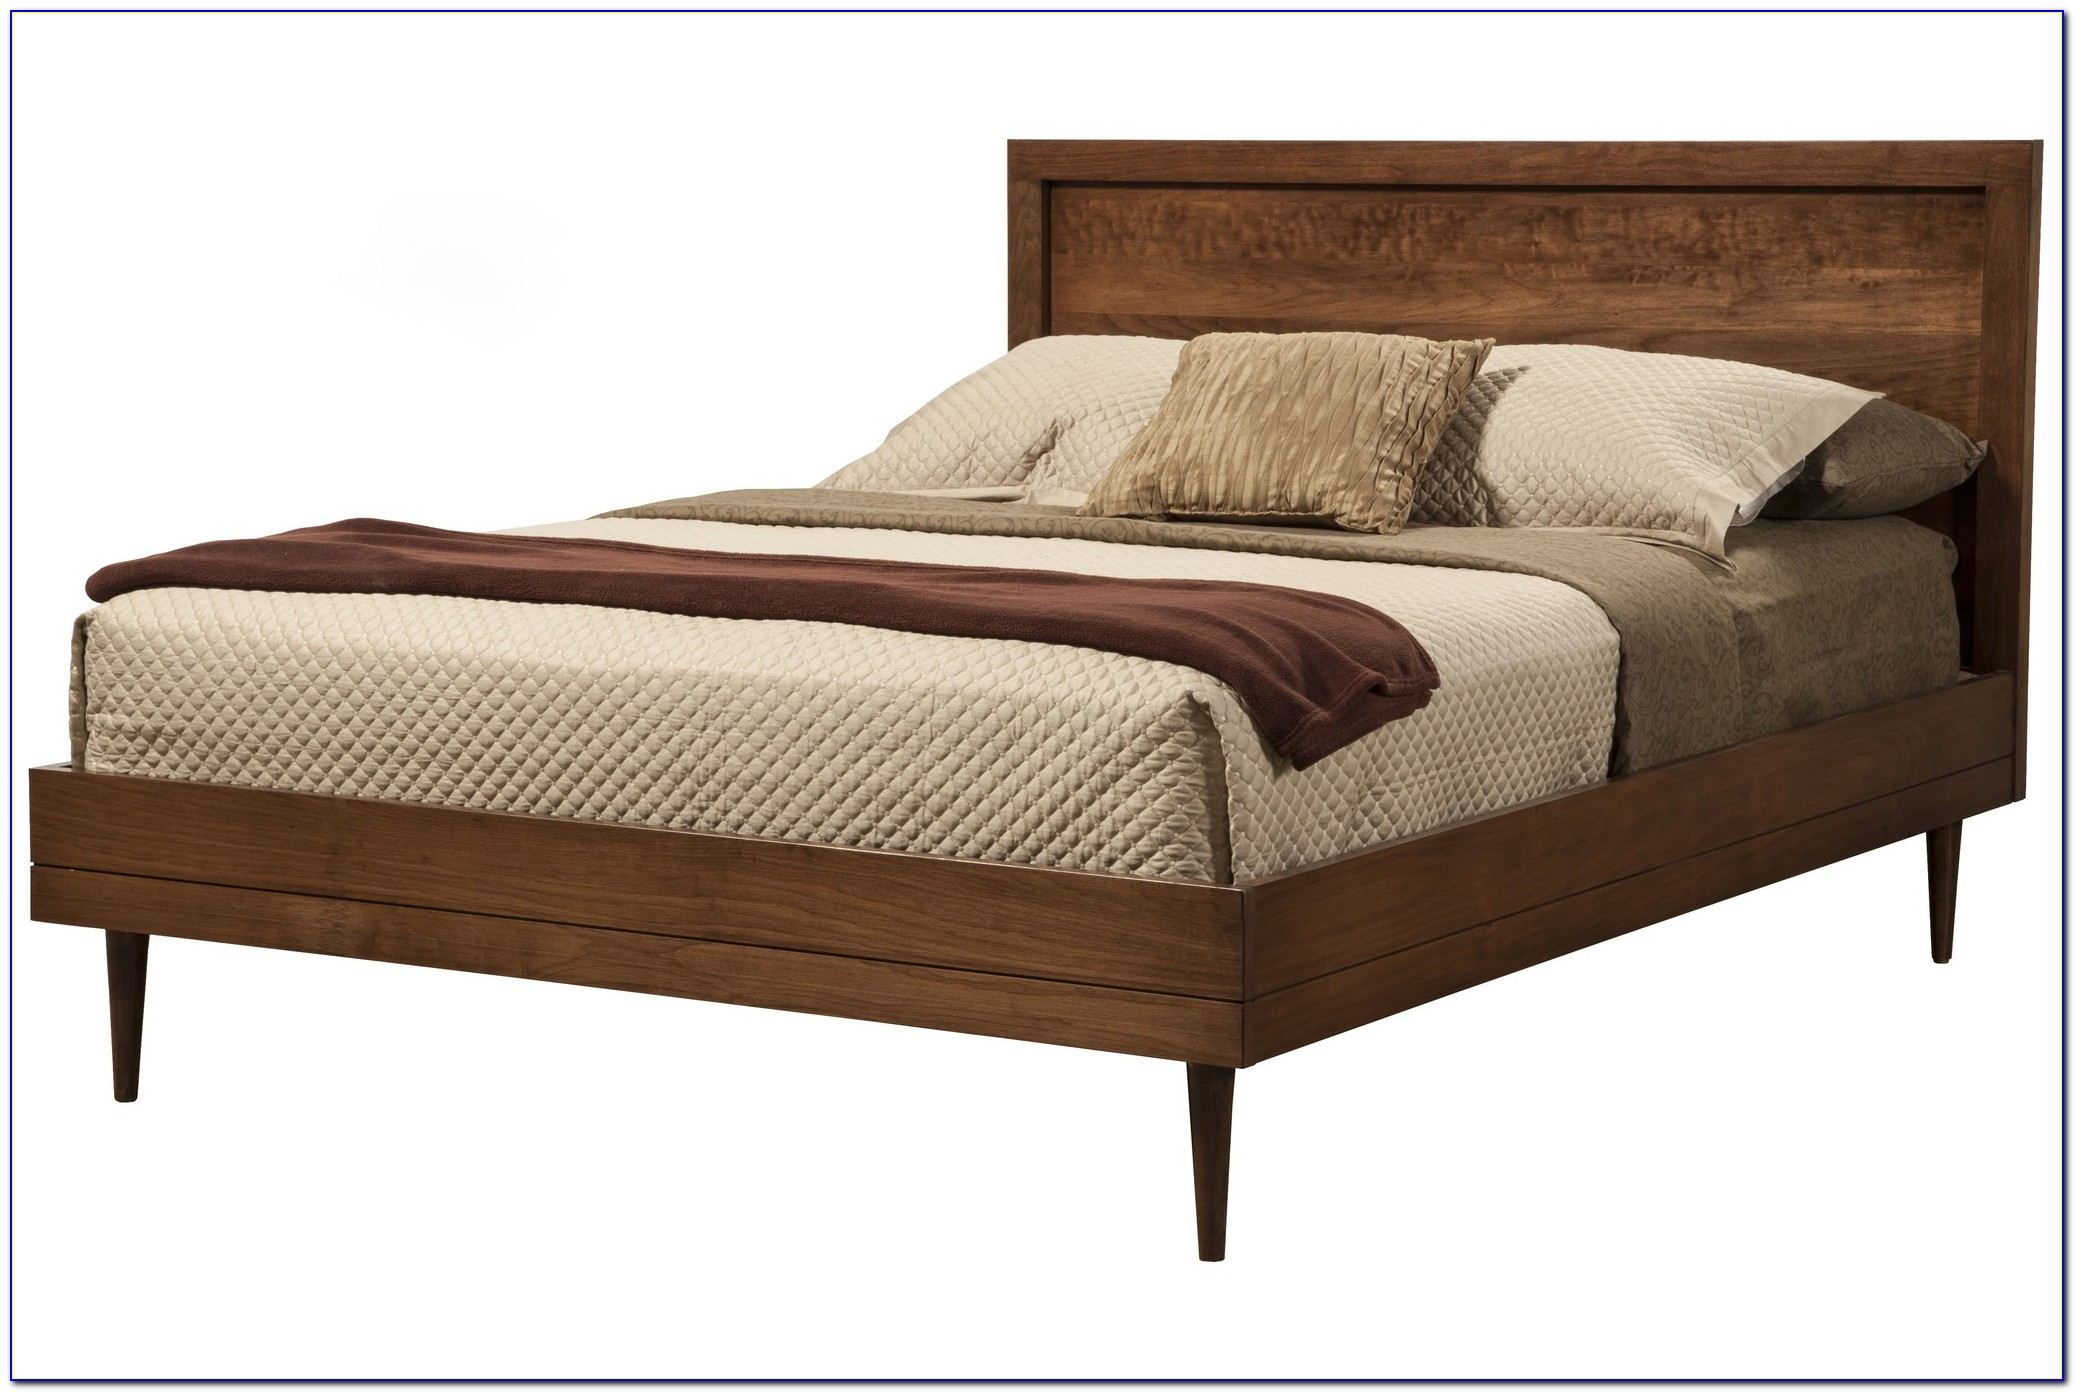 King Size Headboard And Frame For Adjustable Bed